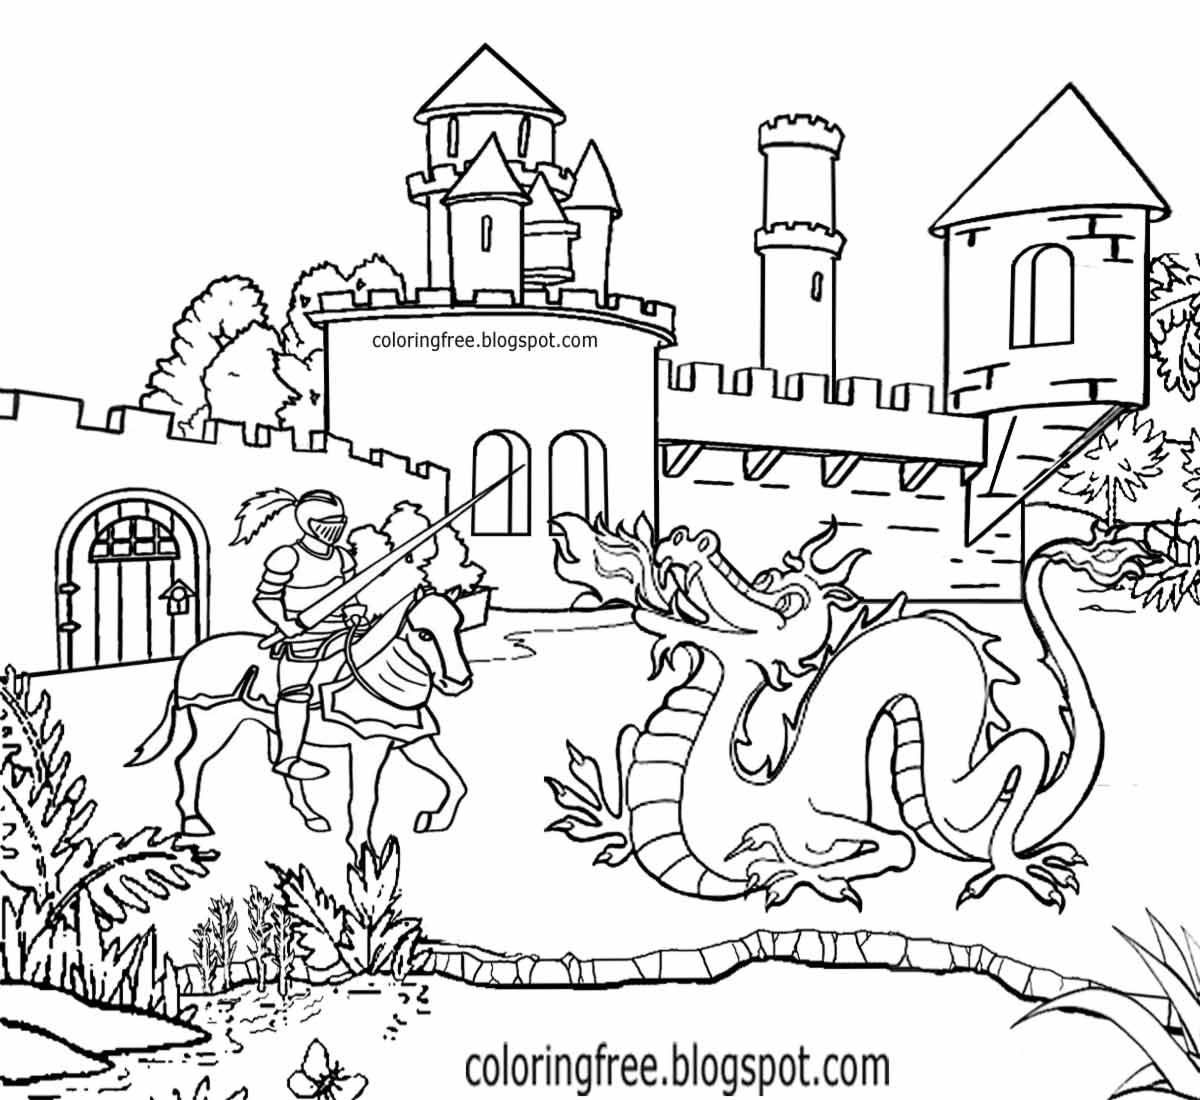 Free Coloring Pages Printable Pictures To Color Kids Drawing Ideas May 2017